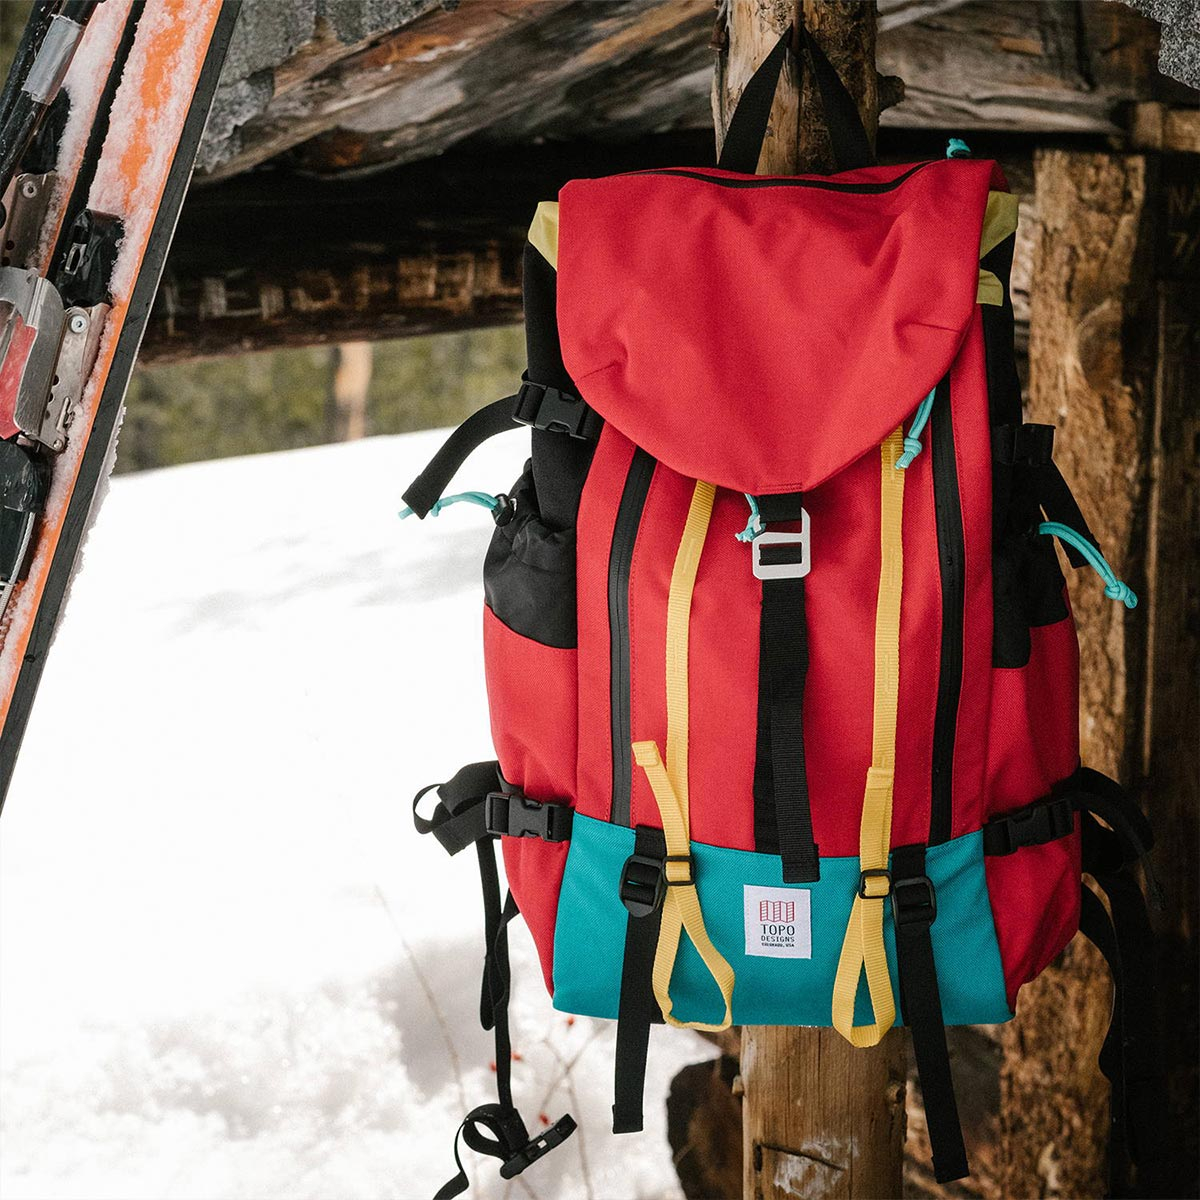 Topo Designs Mountain Pack Red, ideal backpack durable enough for the outdoors